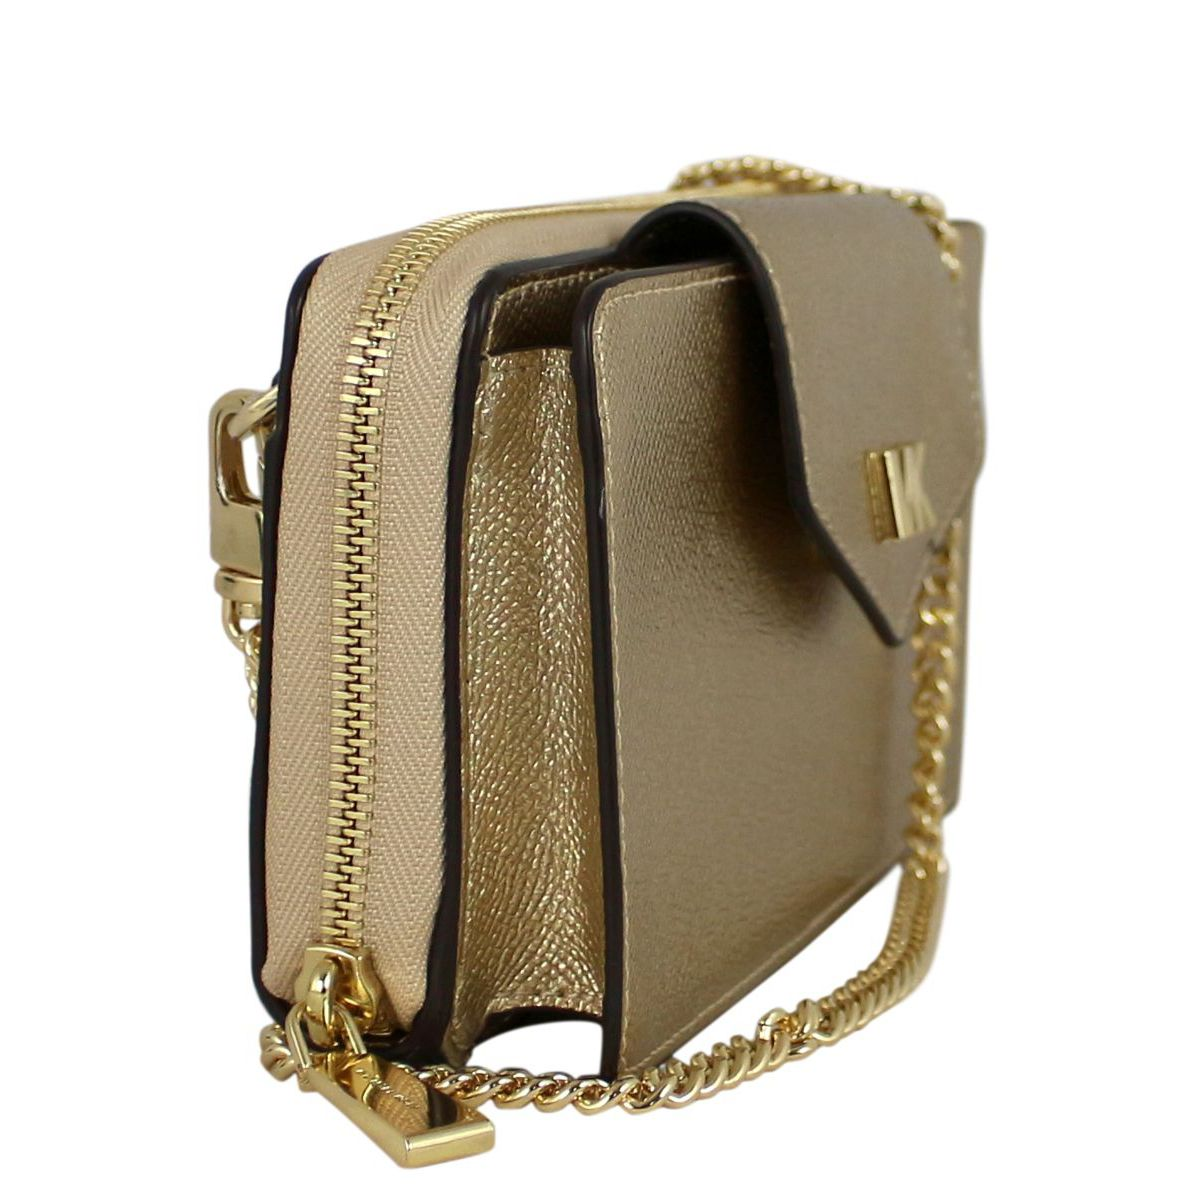 Tote bag in laminated leather Gold Michael Kors